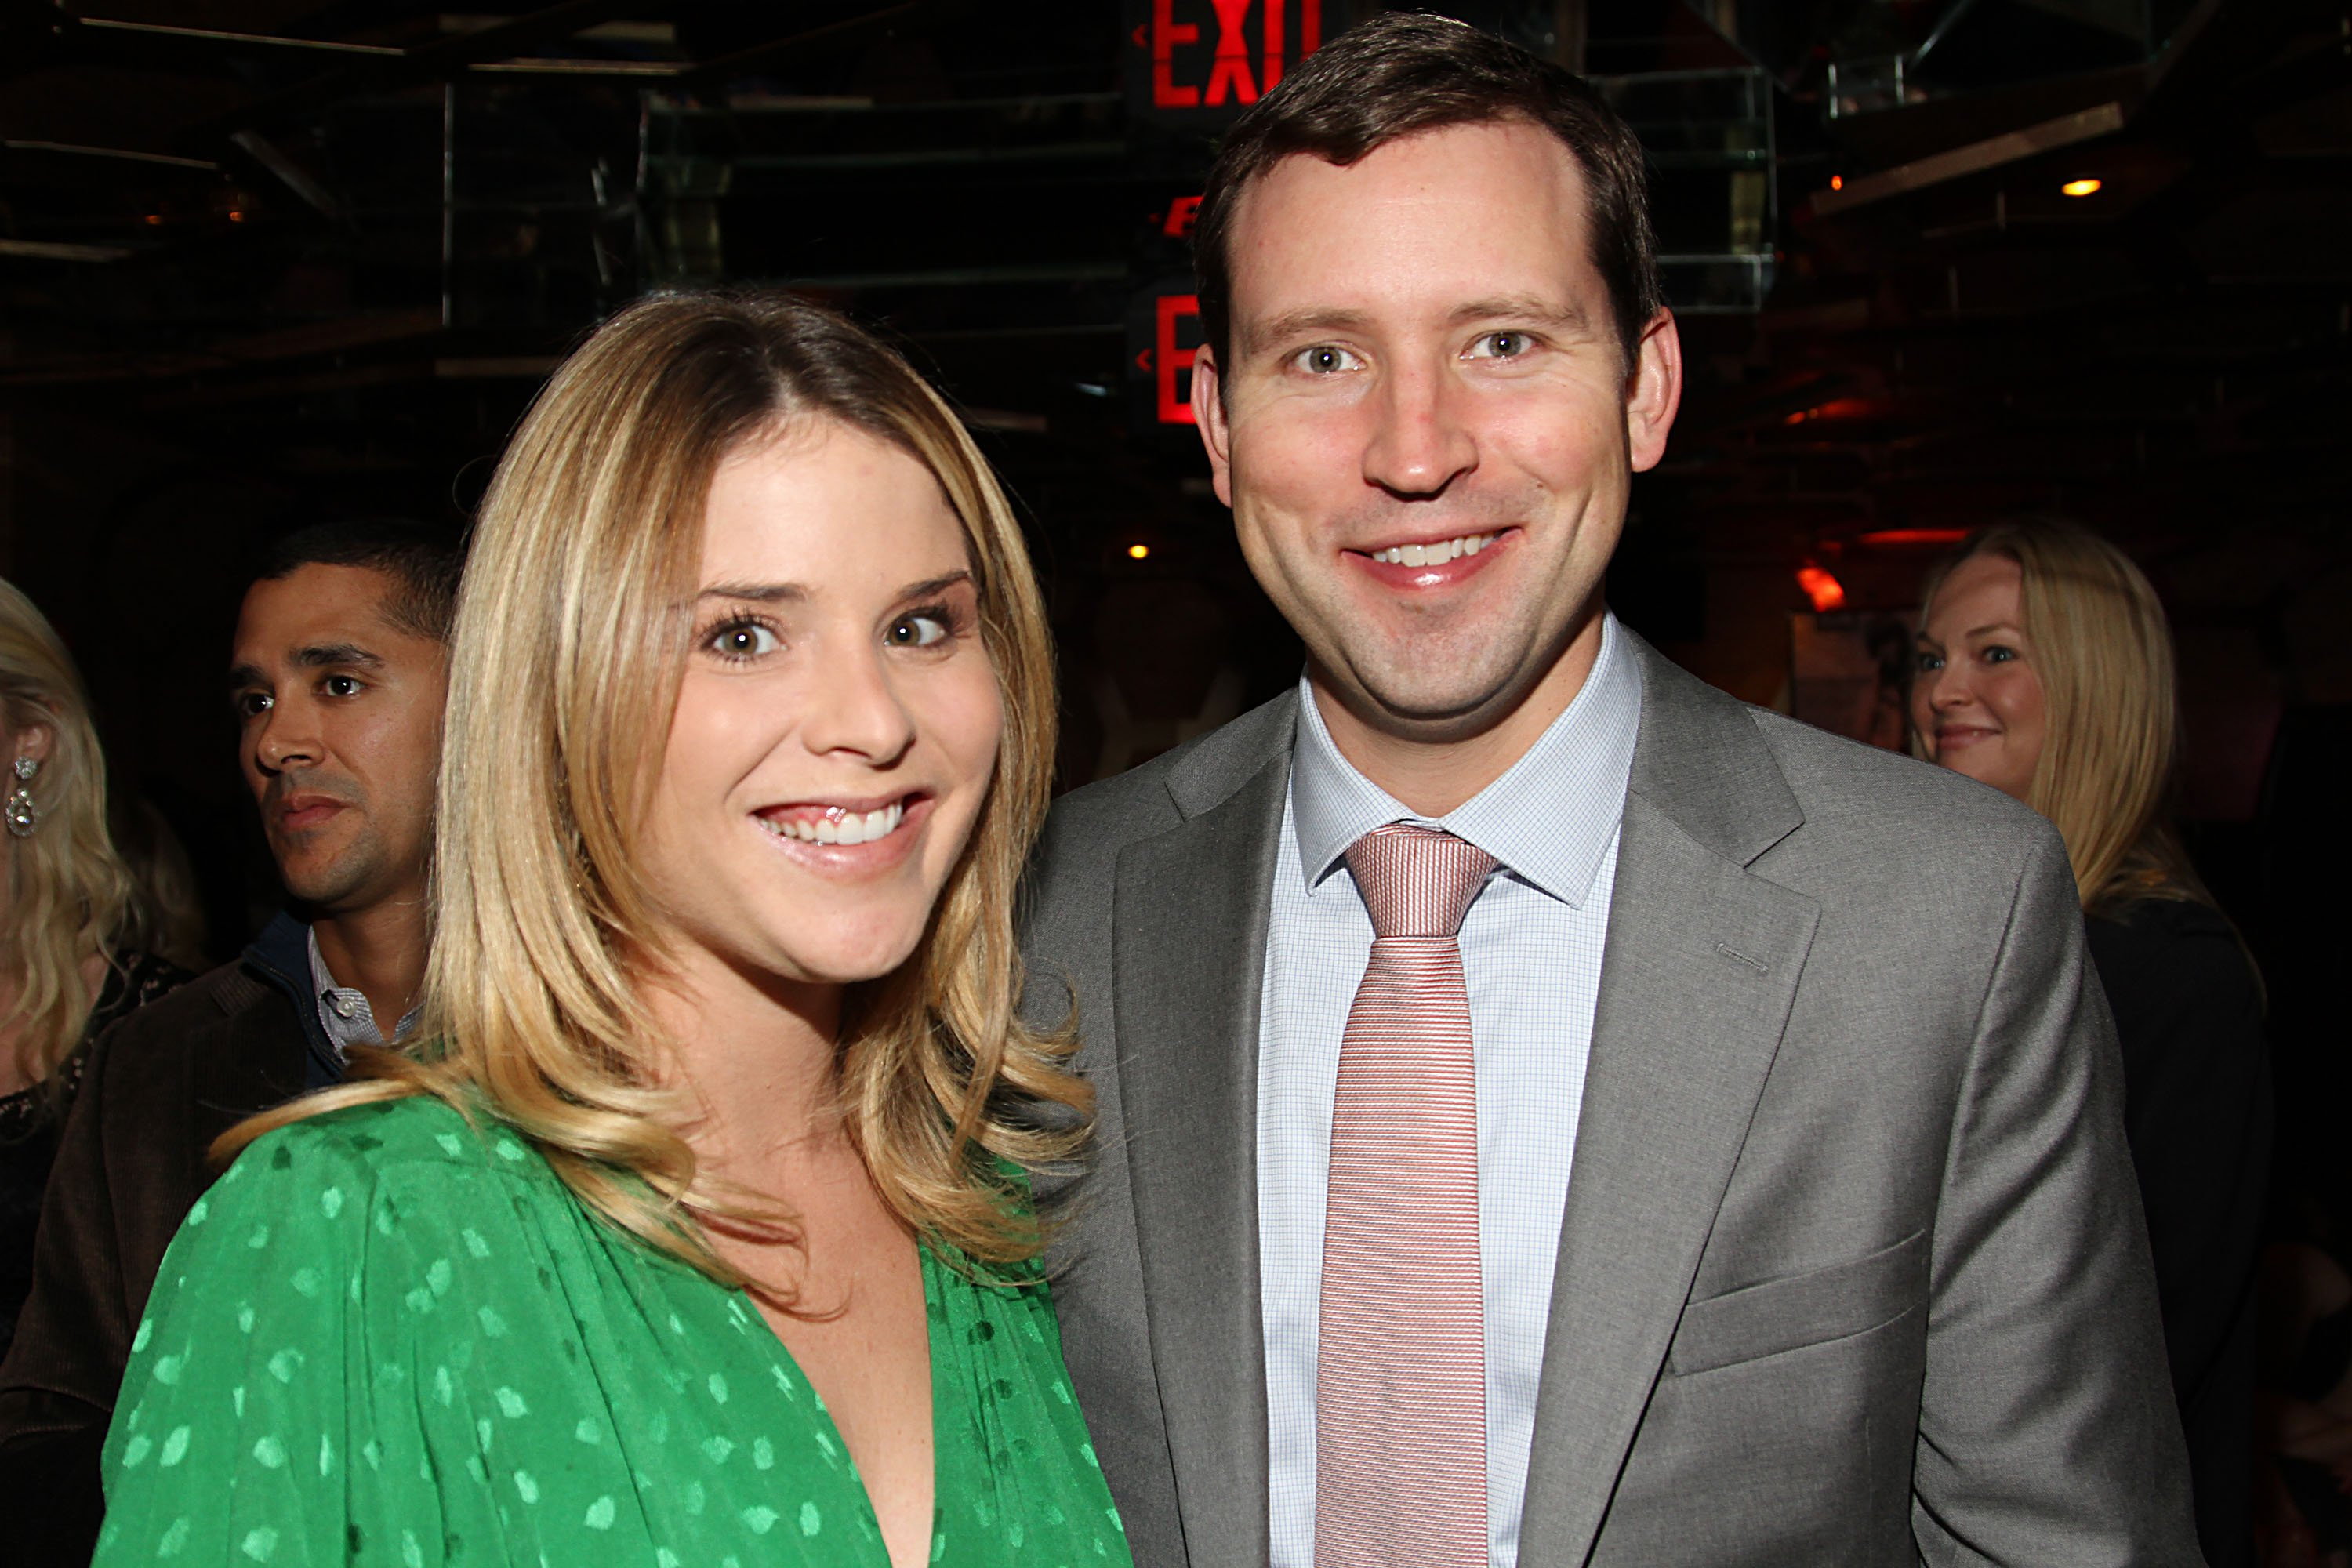 Jenna Bush hager and husband Henry Hager. | Photo: Getty Images